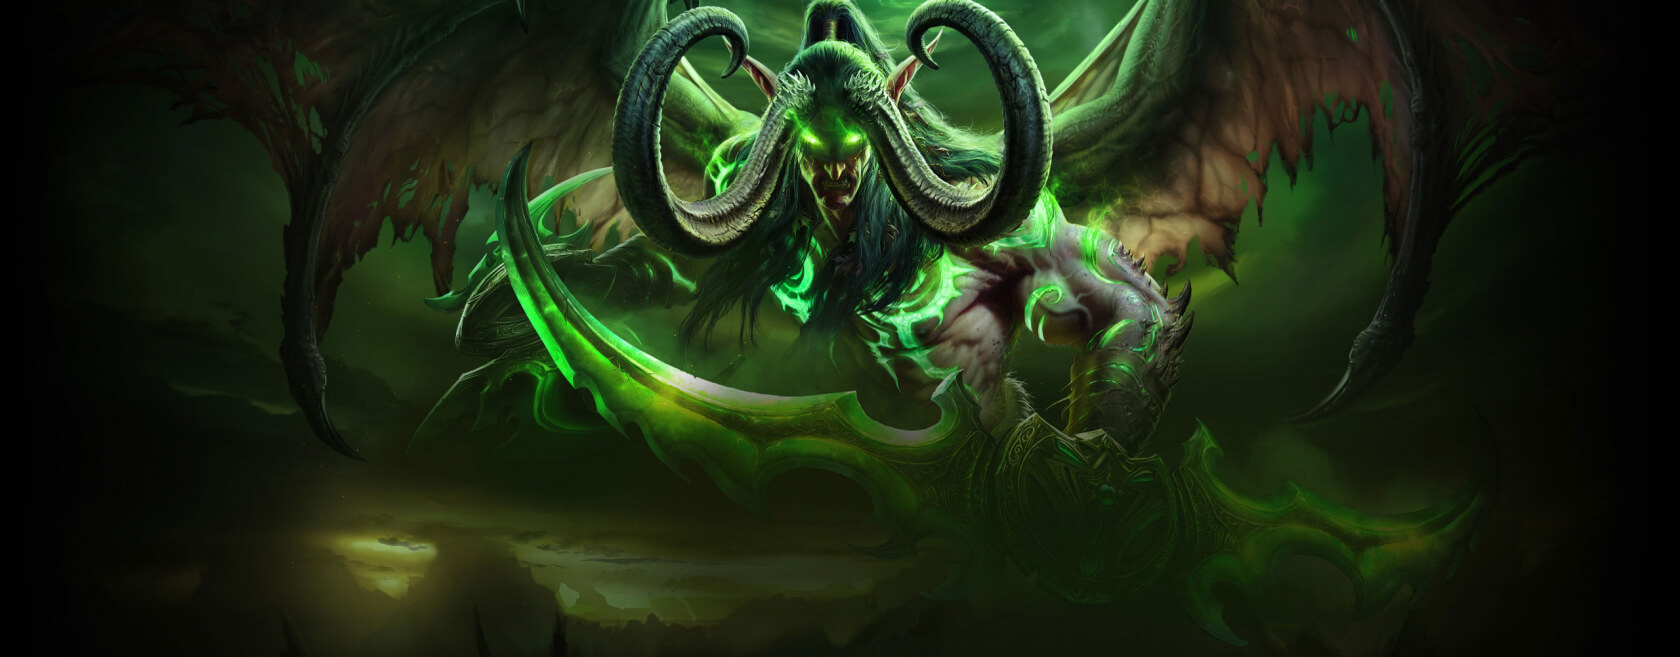 Blizzard bans numerous cheaters after detection of bot use - TechSpot